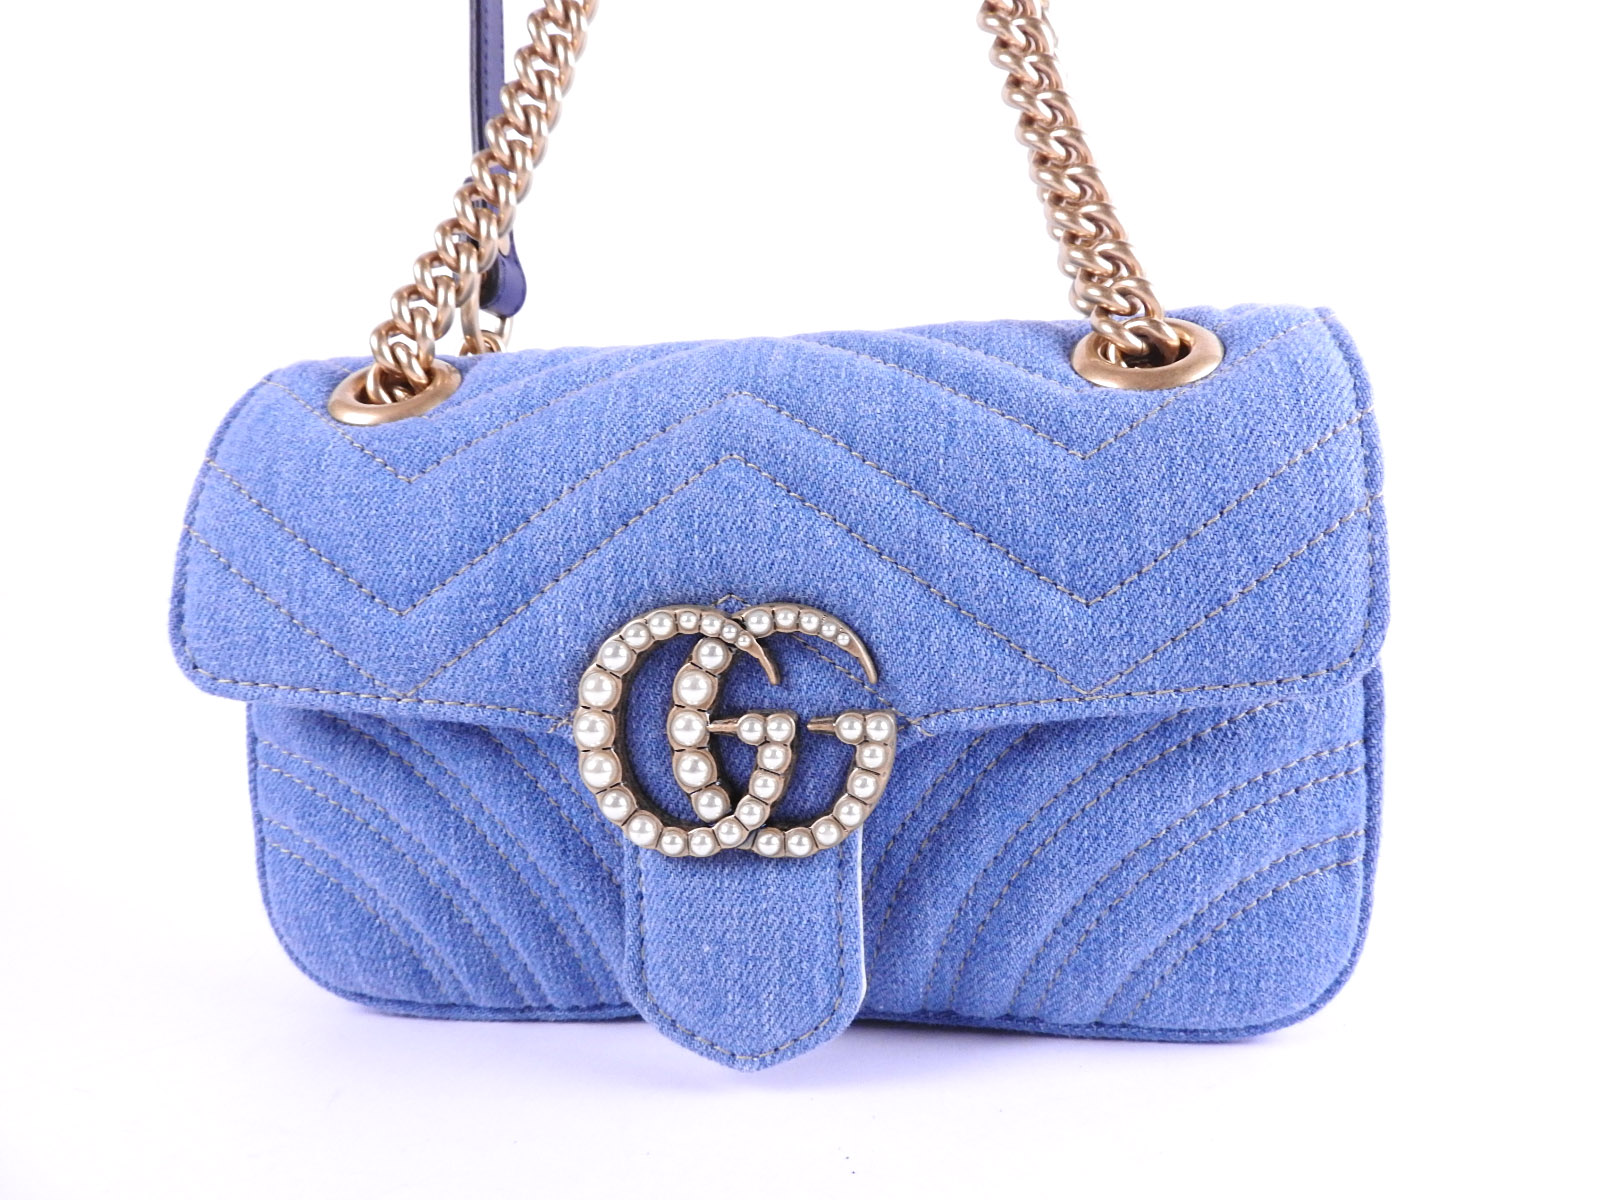 07be8ab11269 Auth GUCCI Japan Limited GG Marmont Chain Shoulder Bag Blue Chevron  Quilting Denim Gold 446744 A-8397